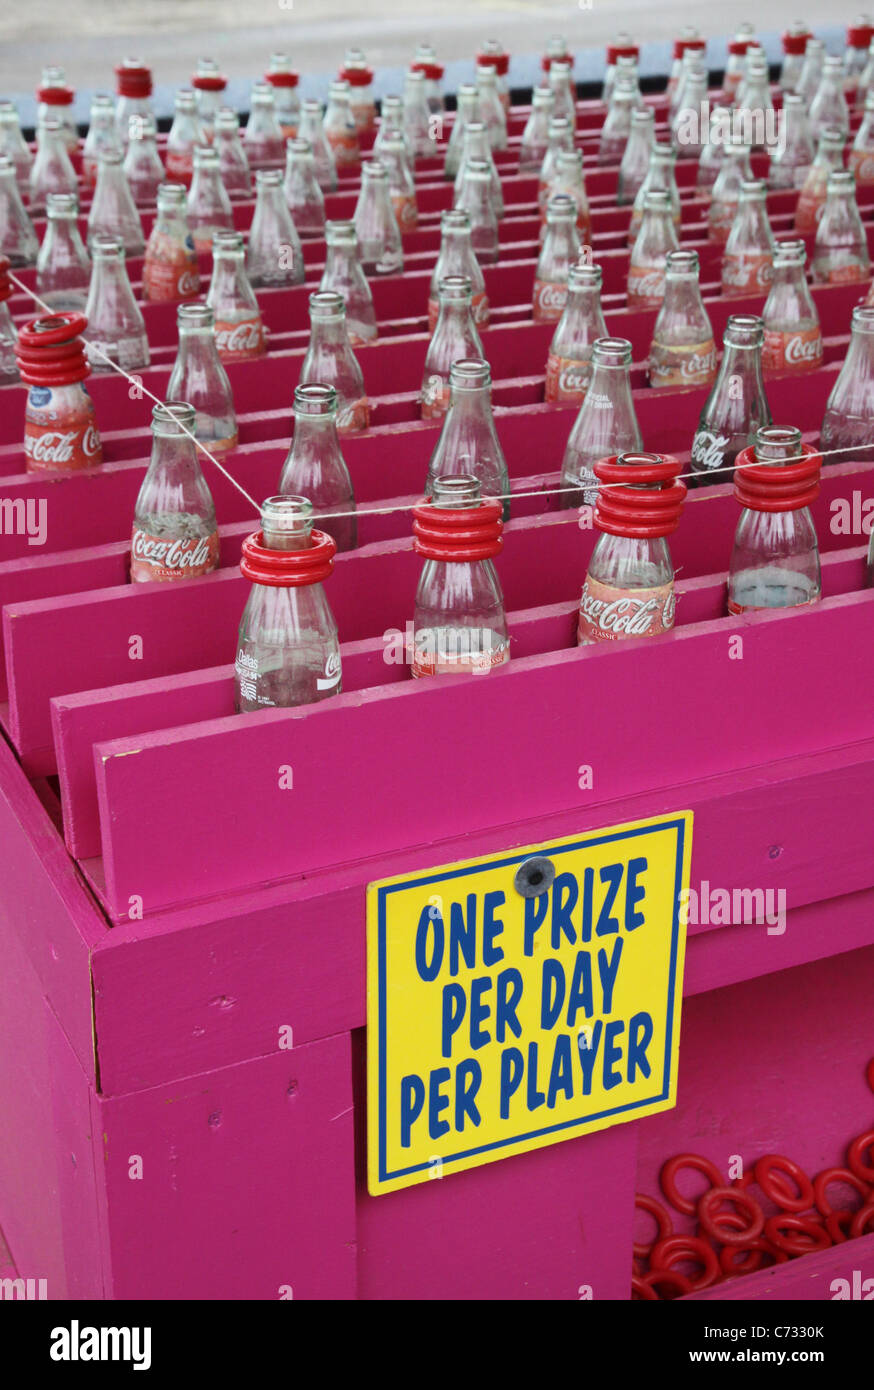 A carnival ring toss game. - Stock Image